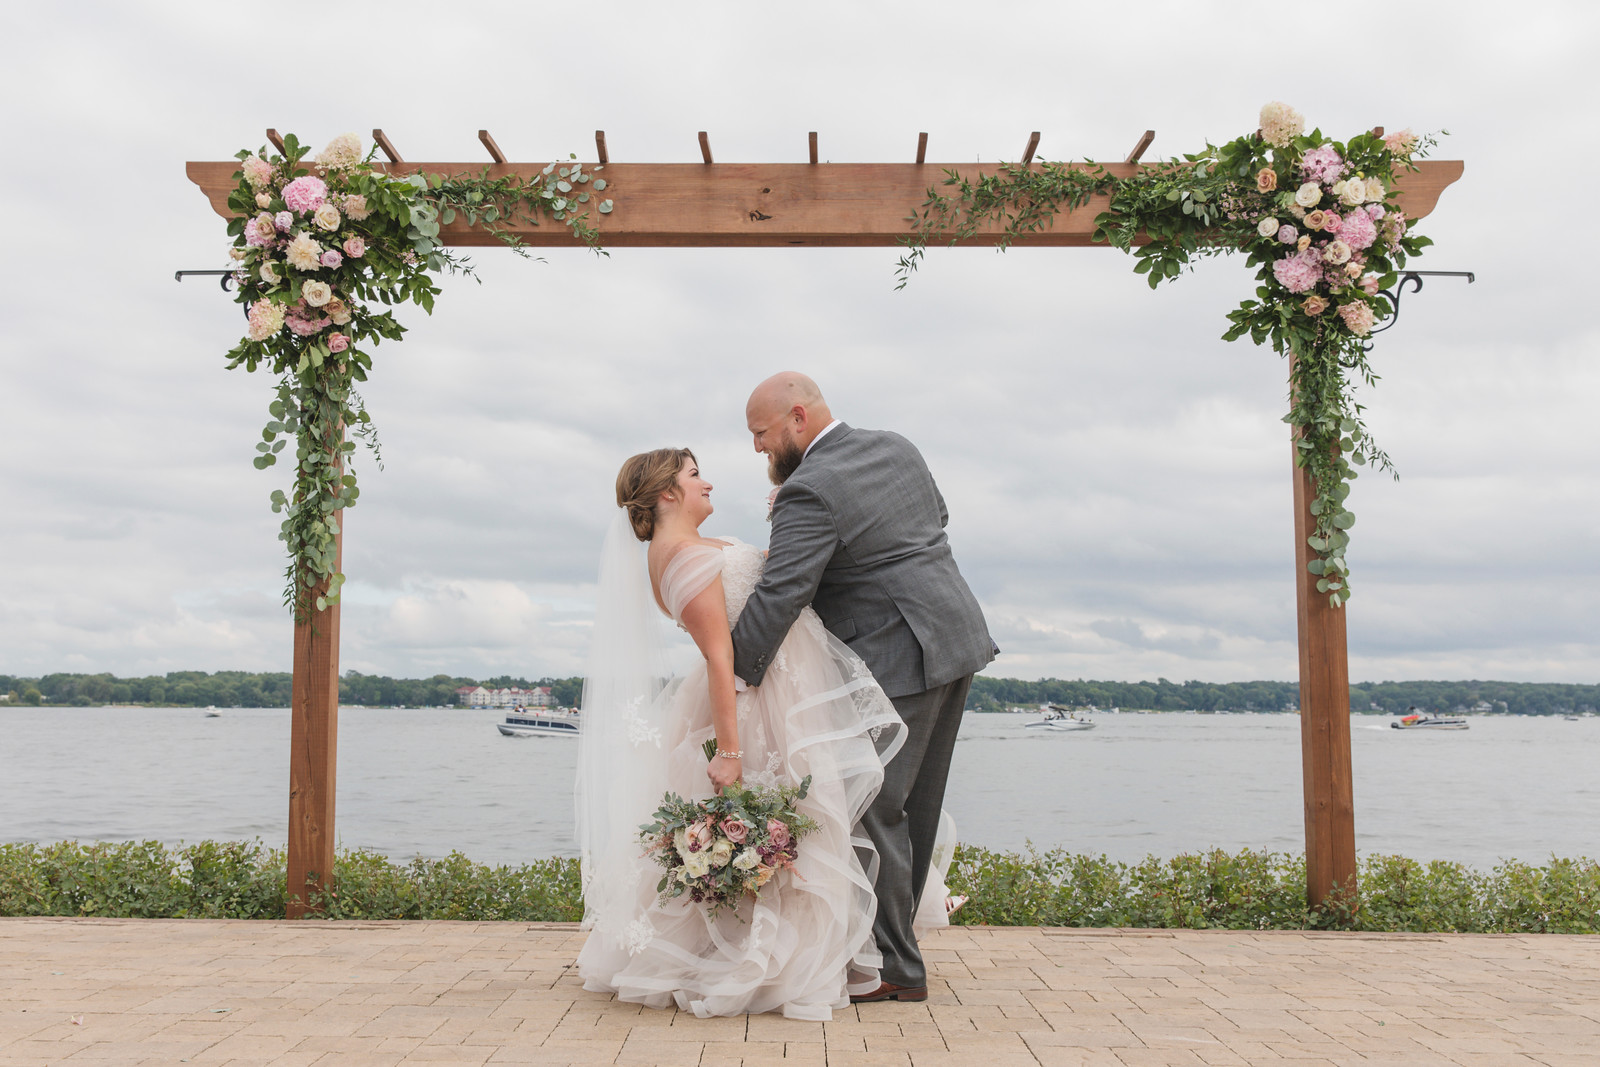 Alyssa + Nate at Lake Lawn Resort (9/1/19)